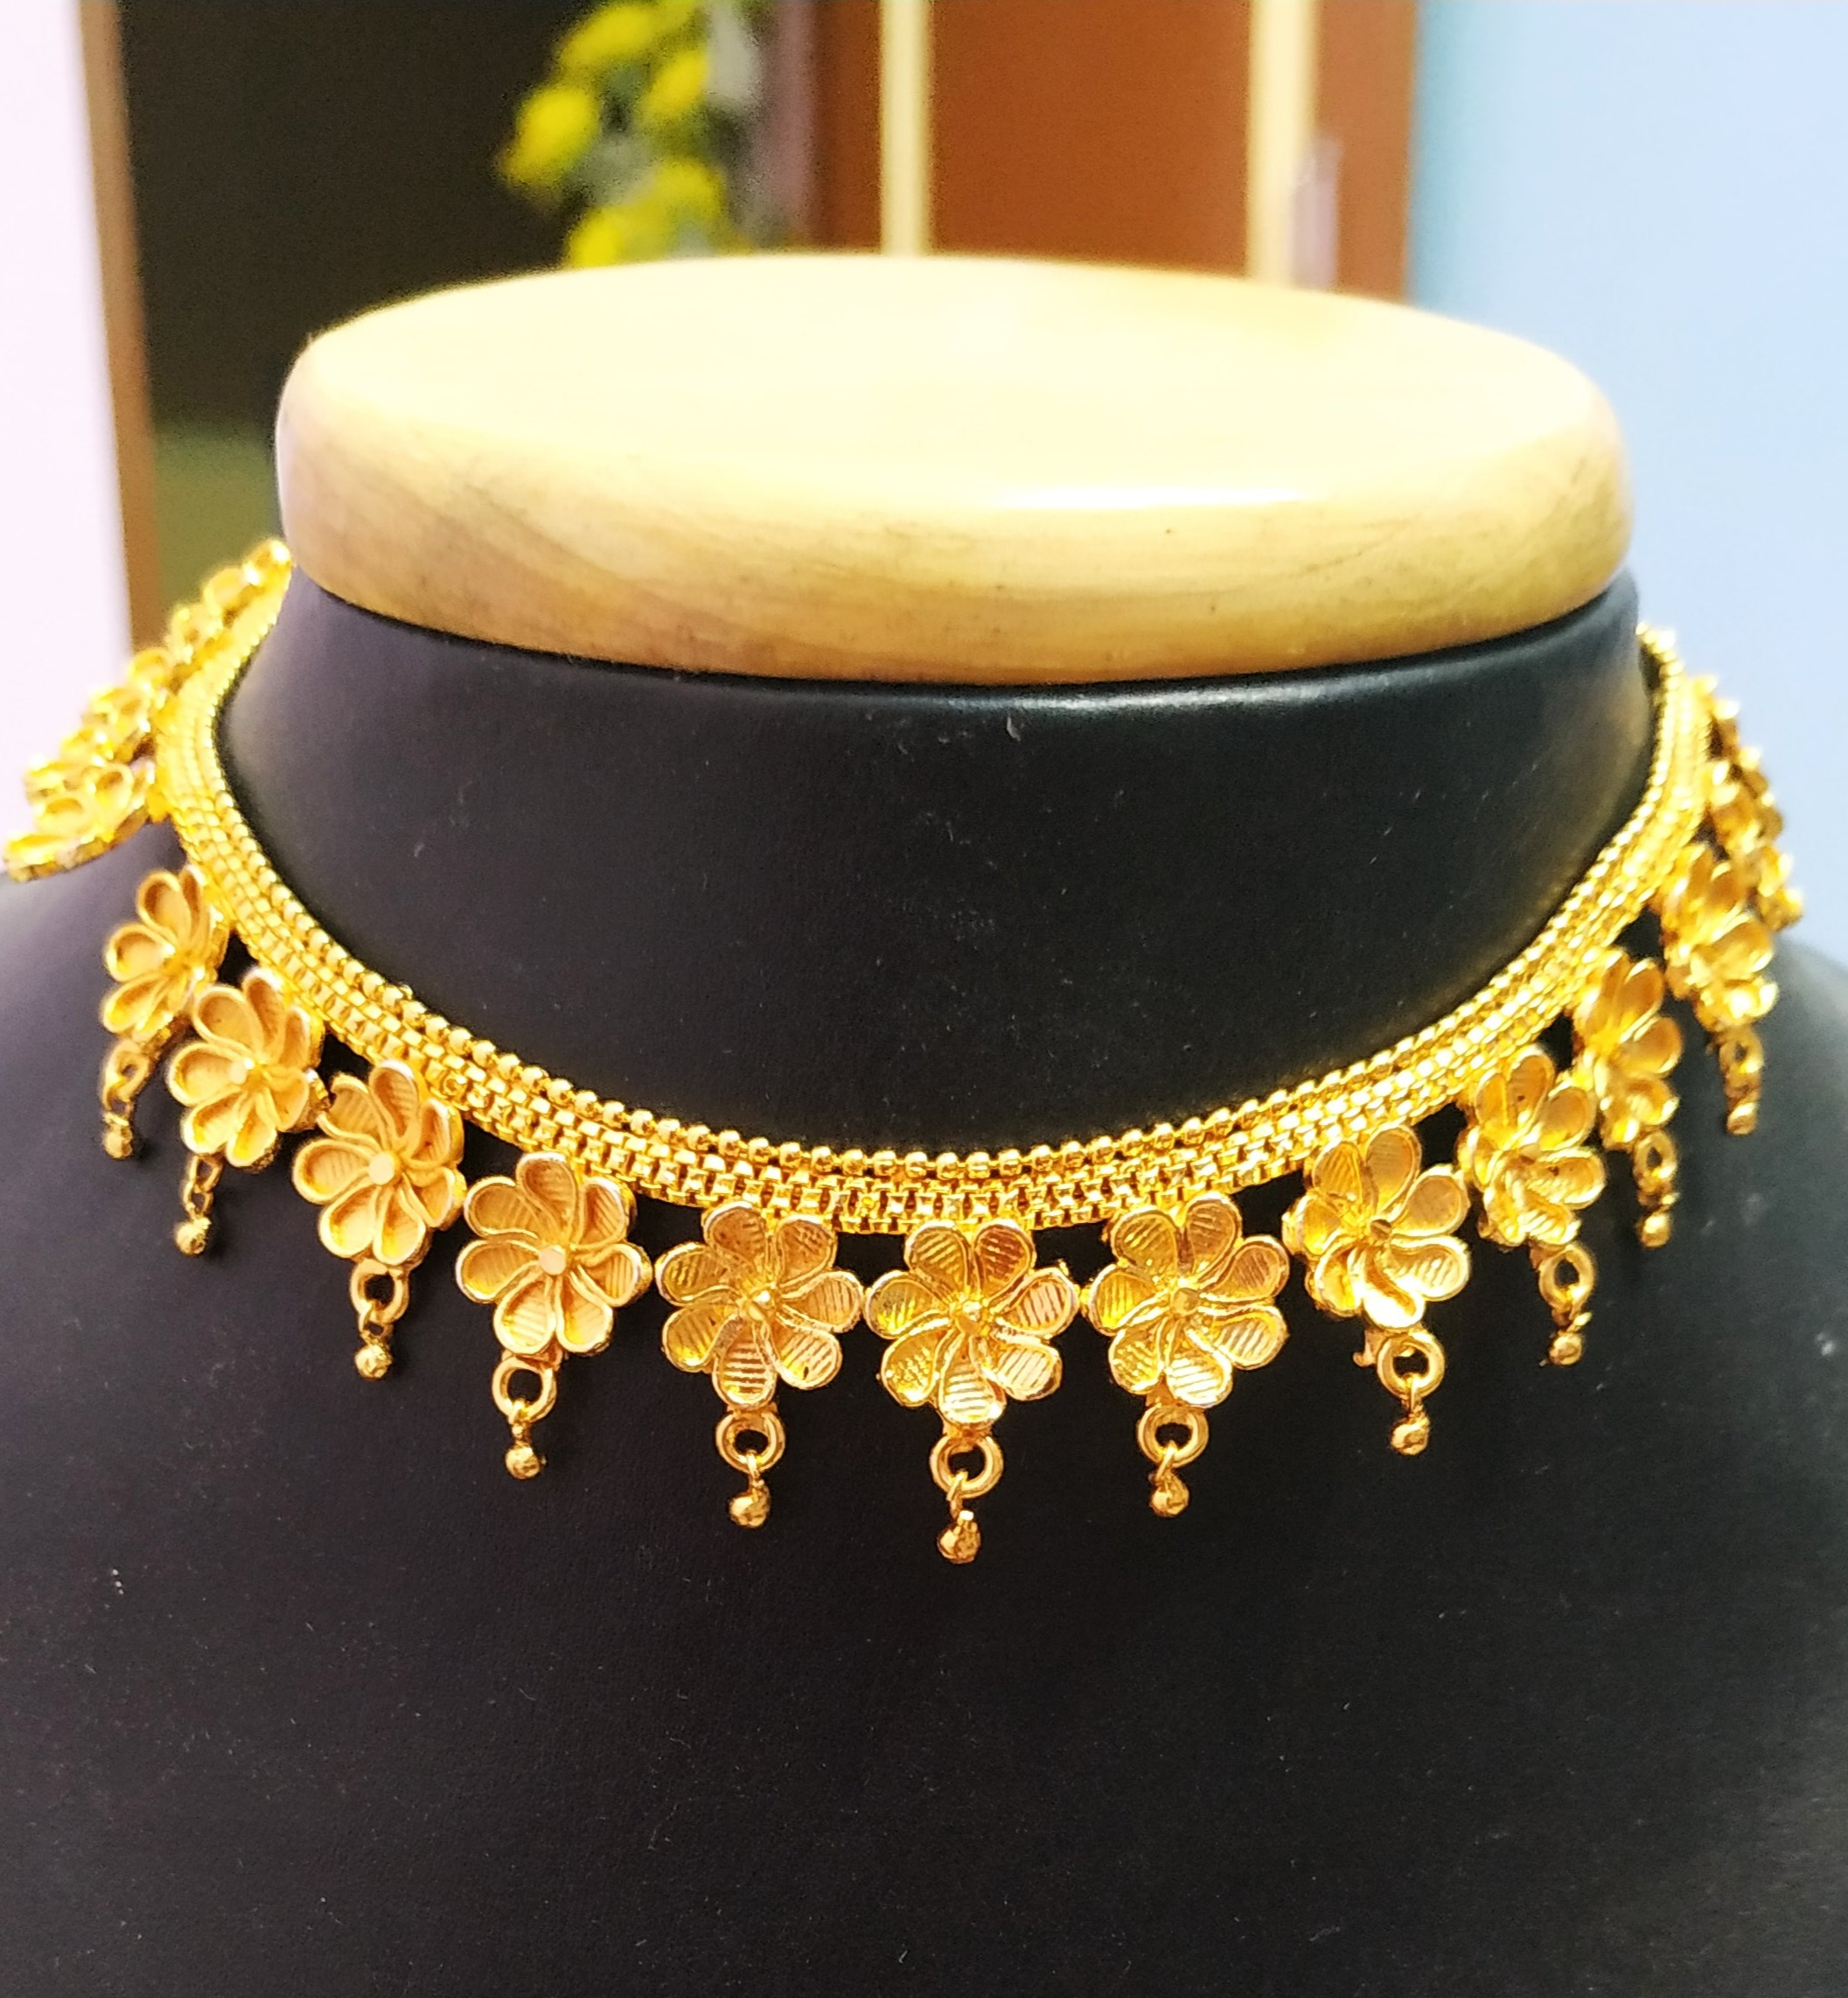 1gm Gold Plated Necklace